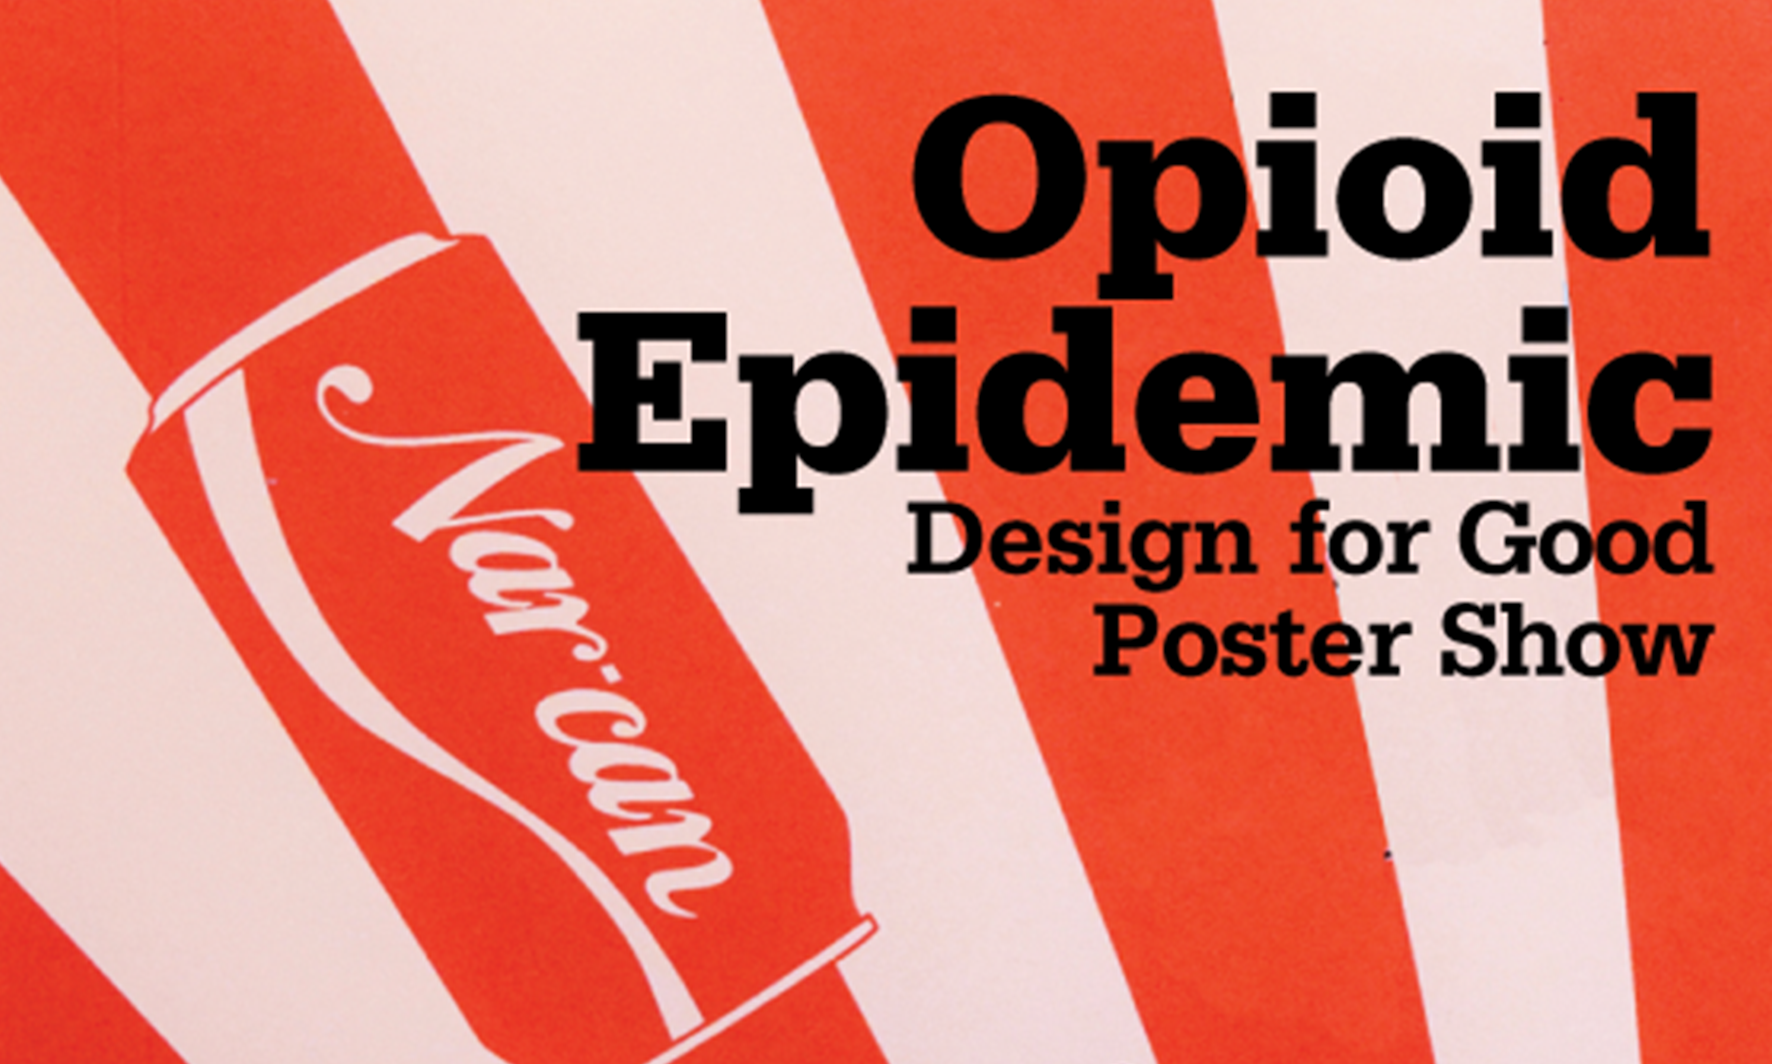 A good poster design - Opioid Epidemic Design For Good Poster Show